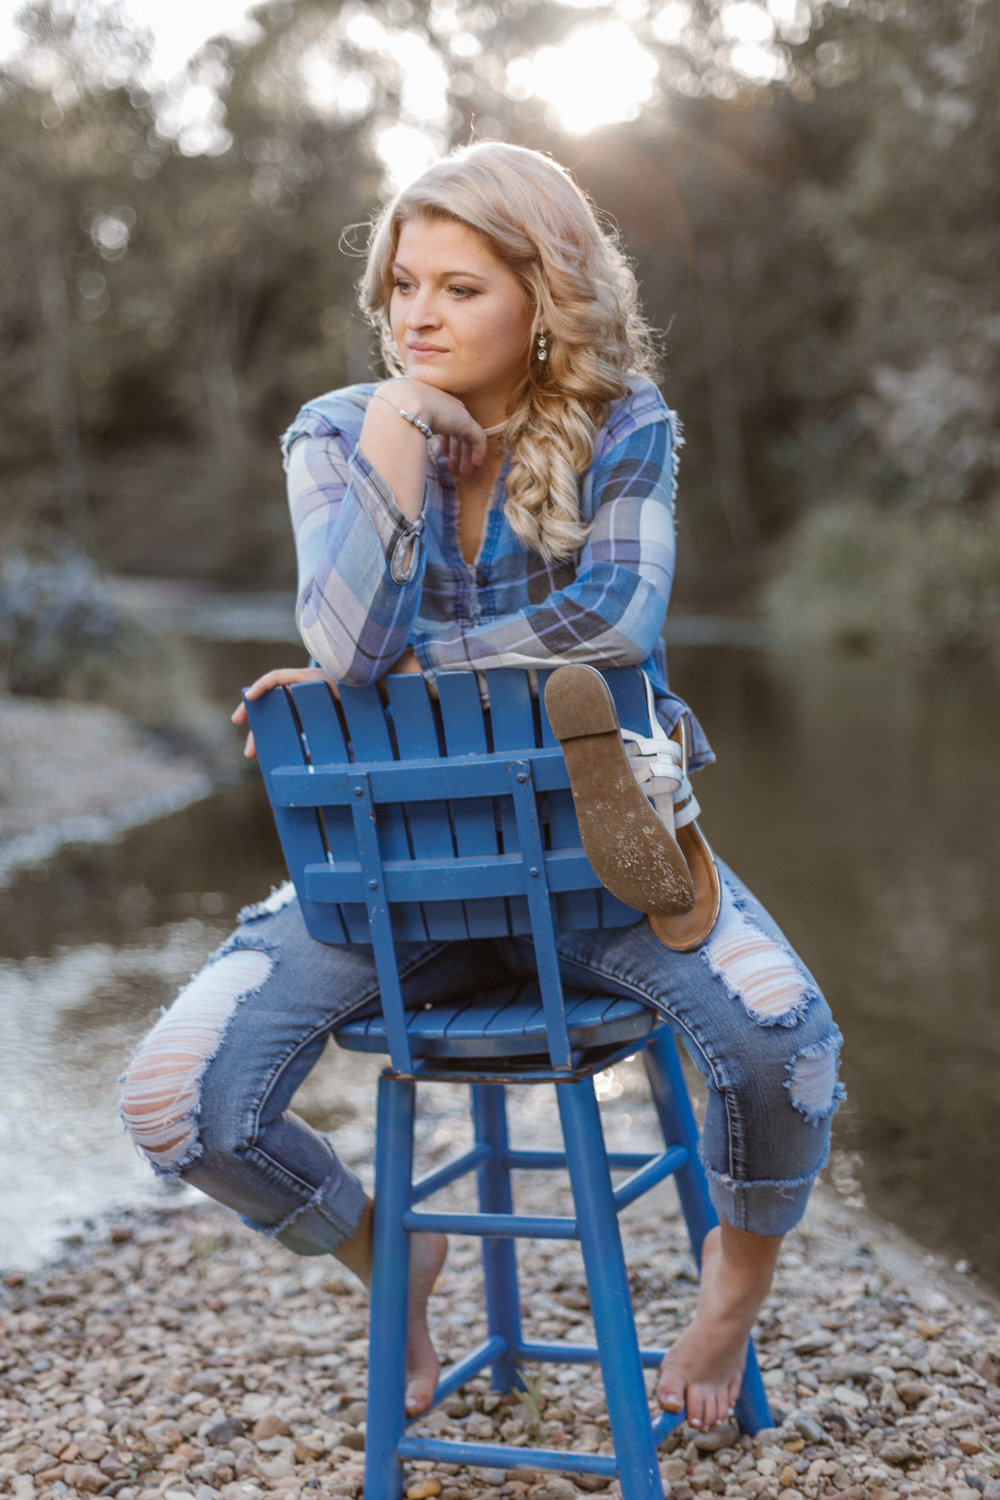 Jewel Sumner Cowboys Senior Portrait Photography